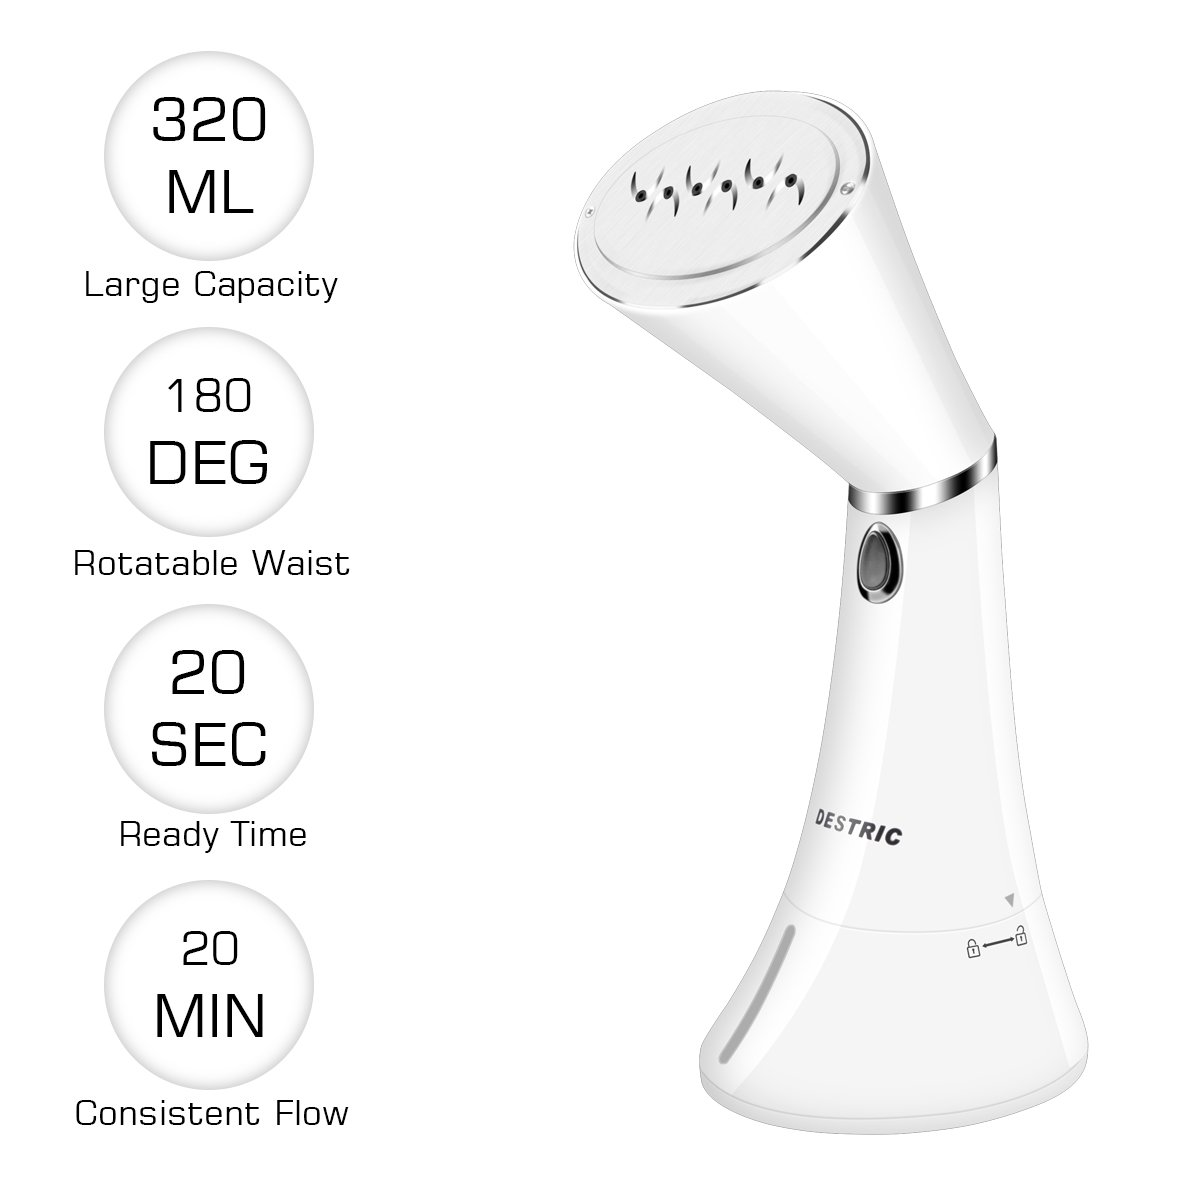 Portable Clothes Steamer, Destric 320ml Handheld Rotatable Travel Garment Steamer, 20s Fast Heat-Up, Safe Automatic Shut-Off, Powerful Fabric Steamer with Cleaning Brushes for Ironing, Traveling, Home